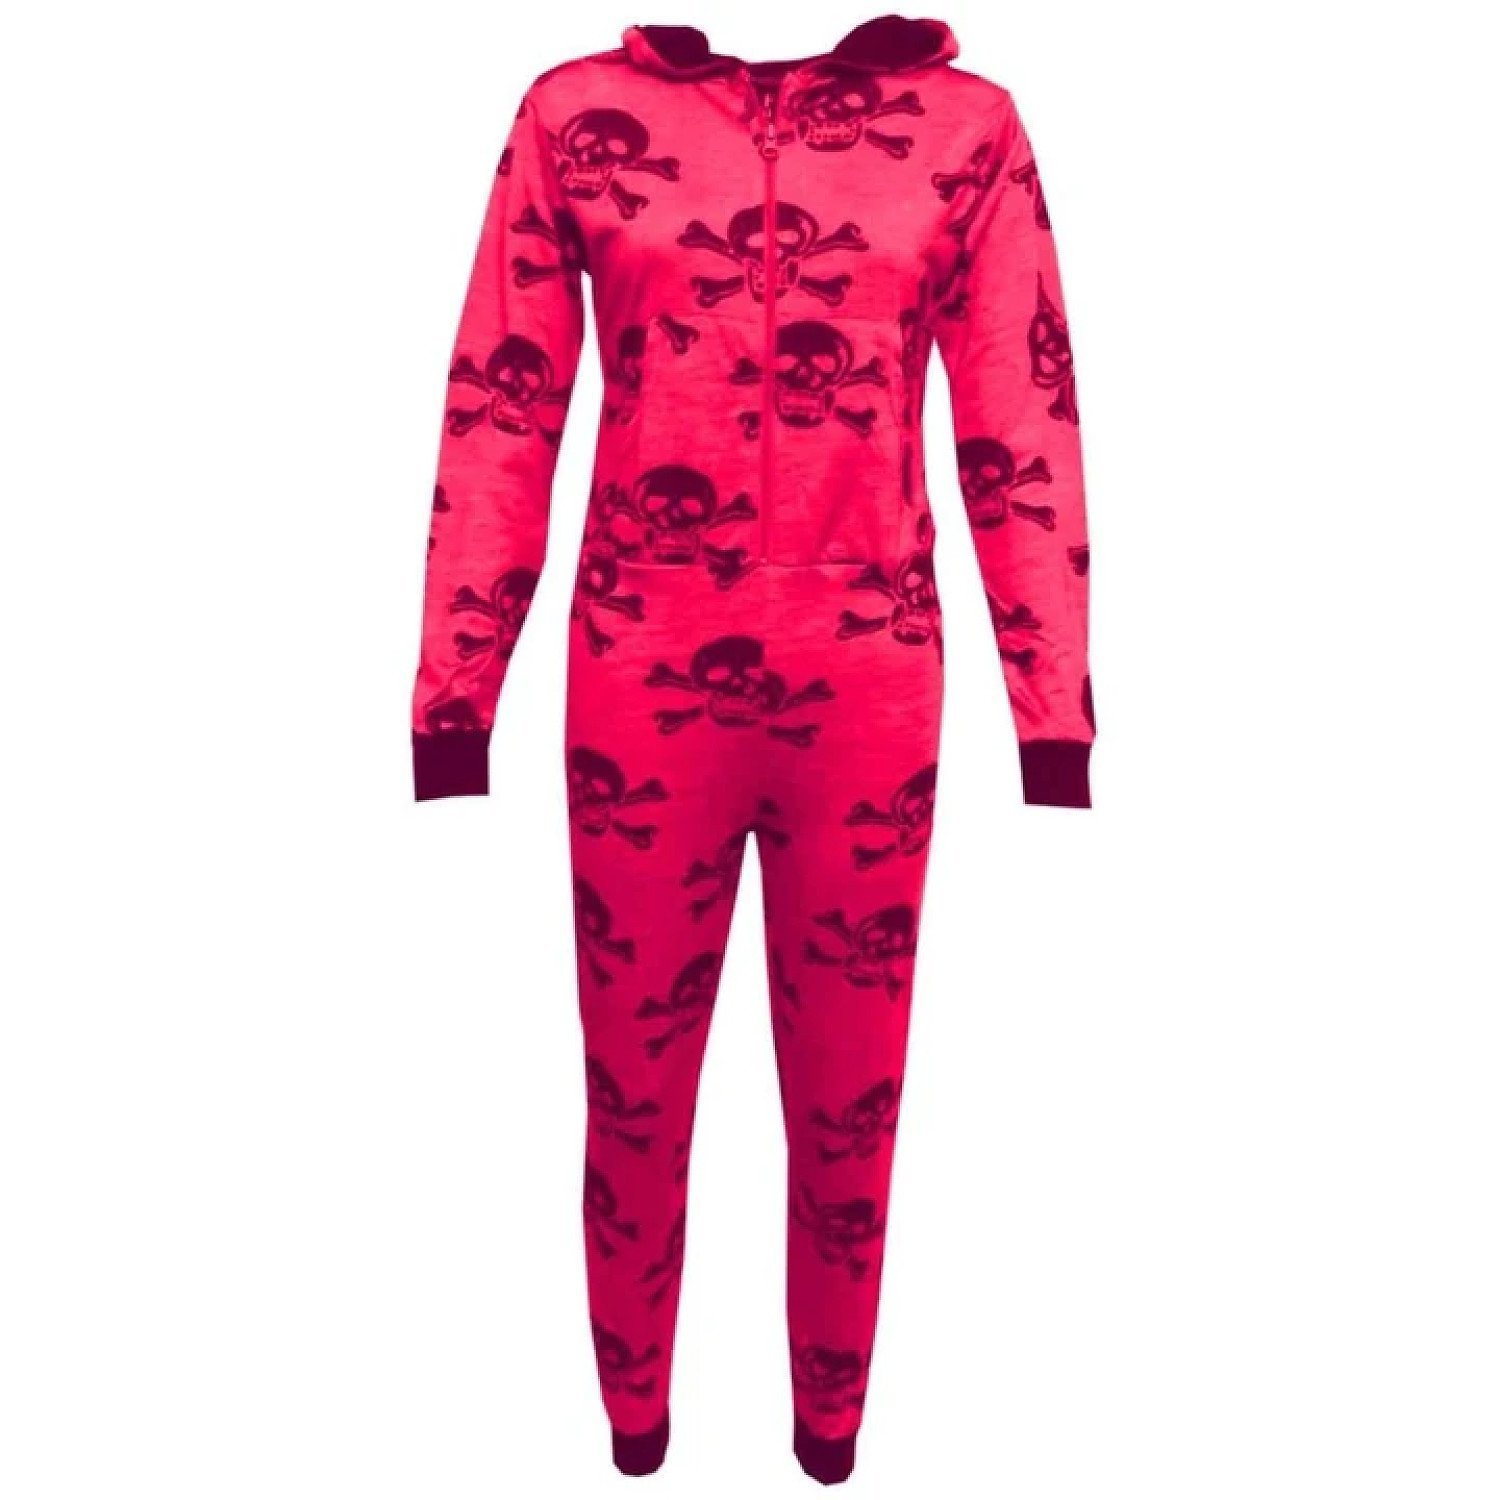 (Neon Pink & Black) Girls/Boys Onesie One Piece Kids Skull & Cross Bone All In One PJ's 5-13 Yrs